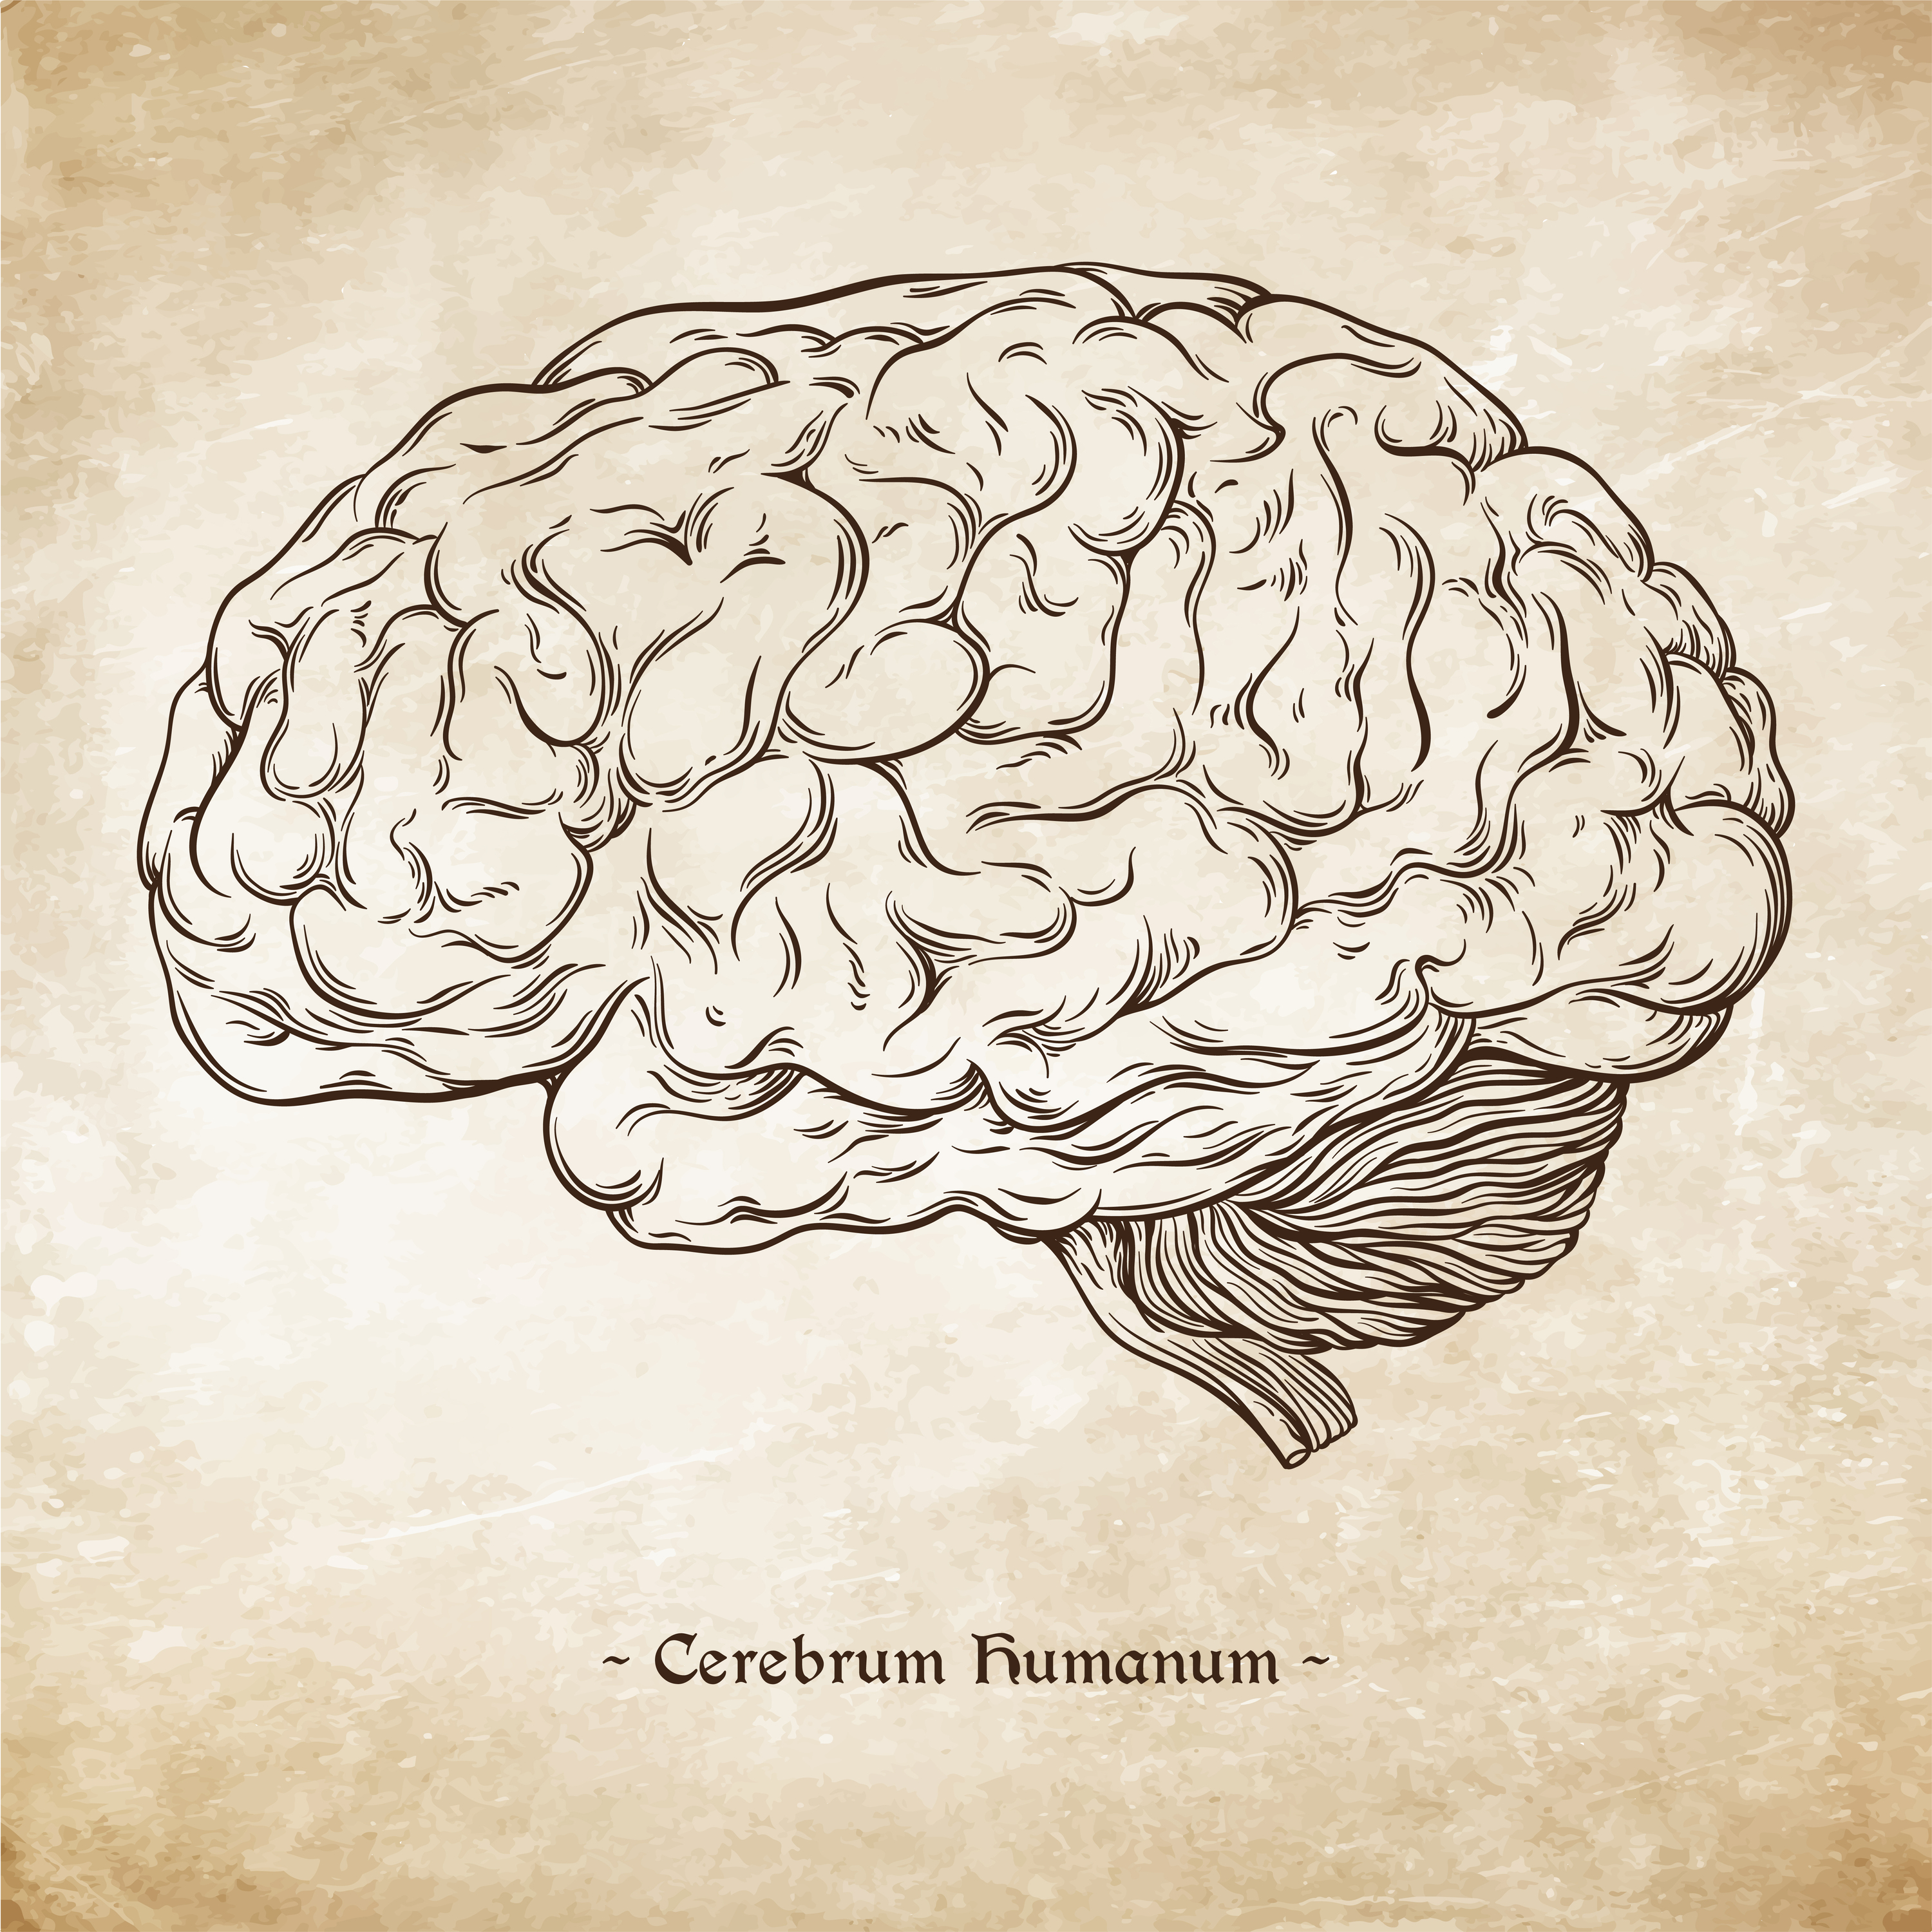 an essay on the human brain This is called the nervous system the nerves in the body don't just send messages from the brain to the organs, but also send messages from the eyes, ears, skin and other organs back to your brain.